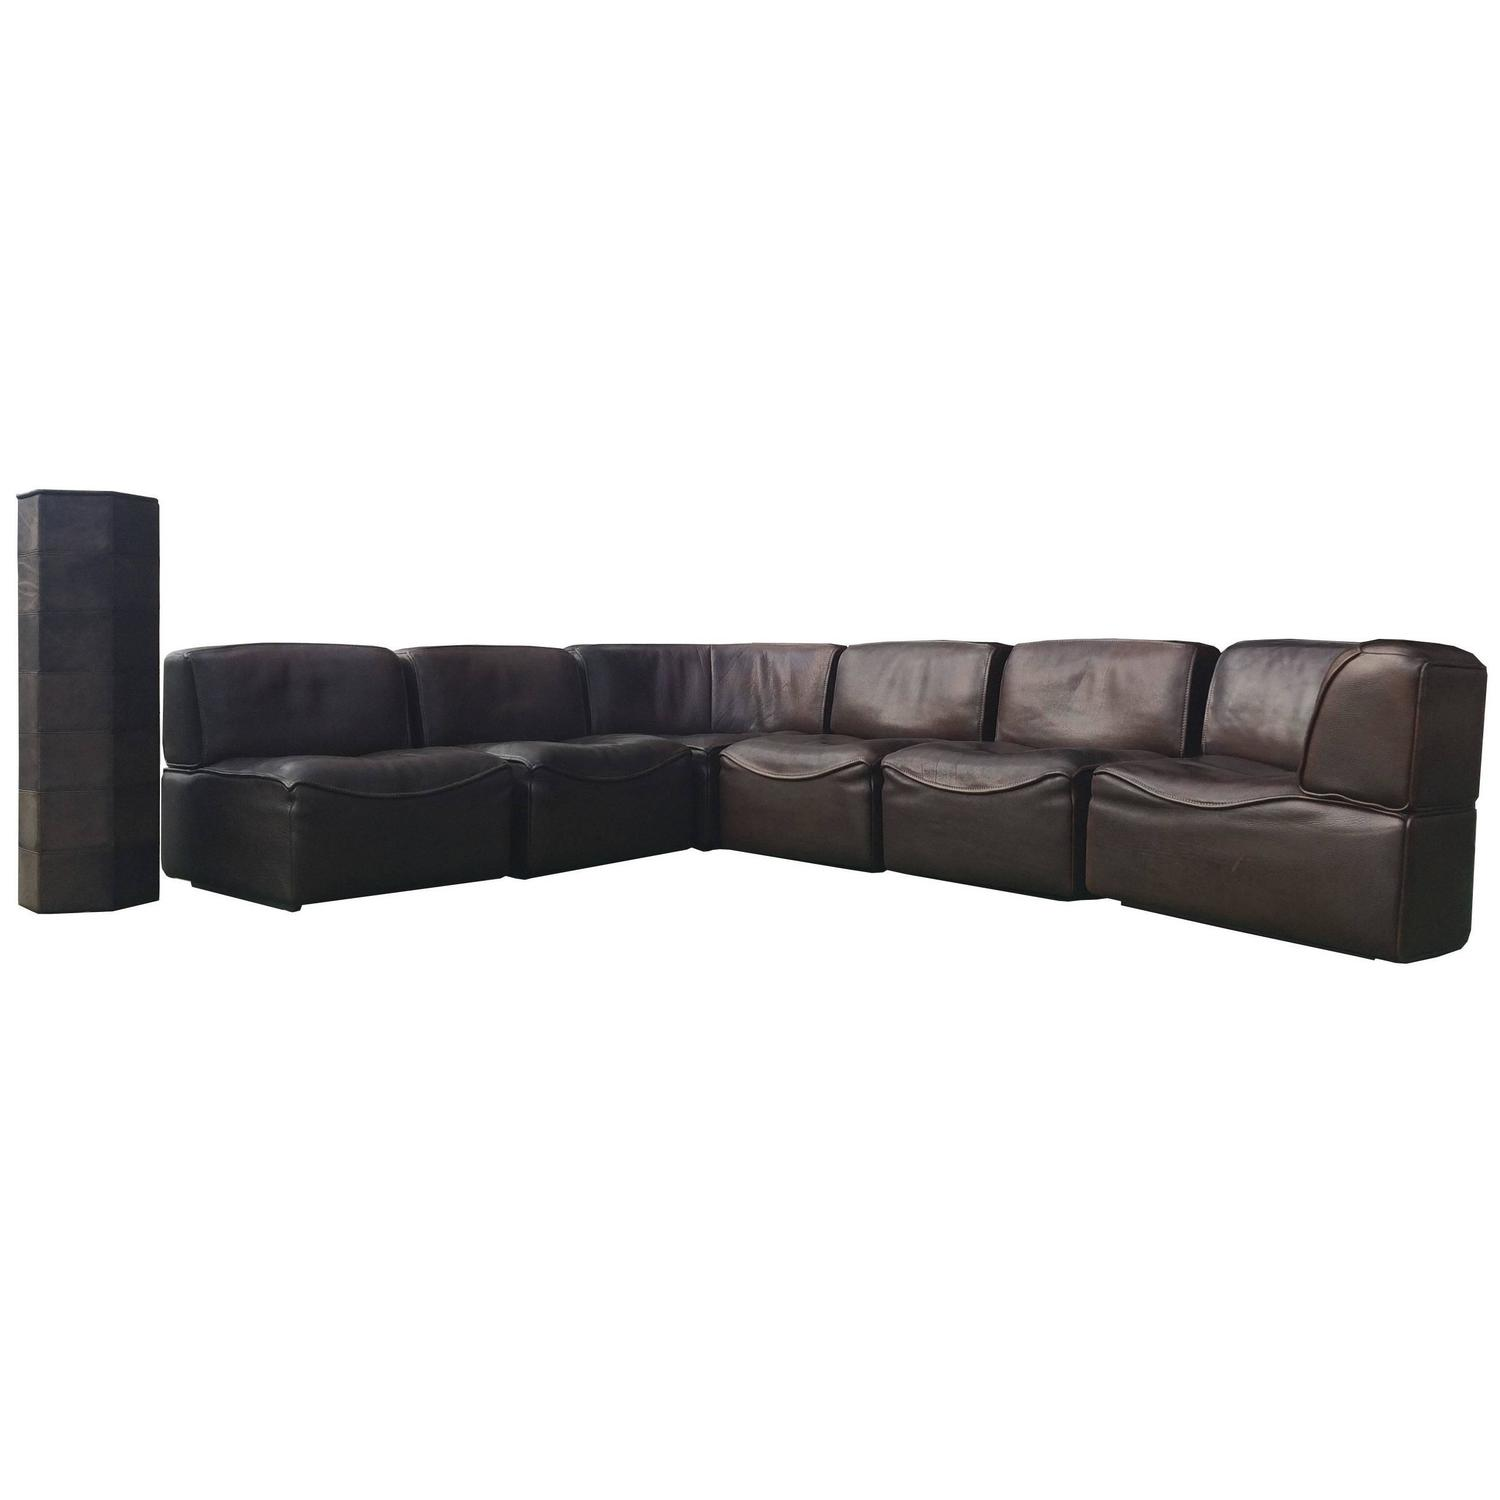 20th Century De Sede DS-15 Neck Leather Sofa, Set of Seven at 1stdibs